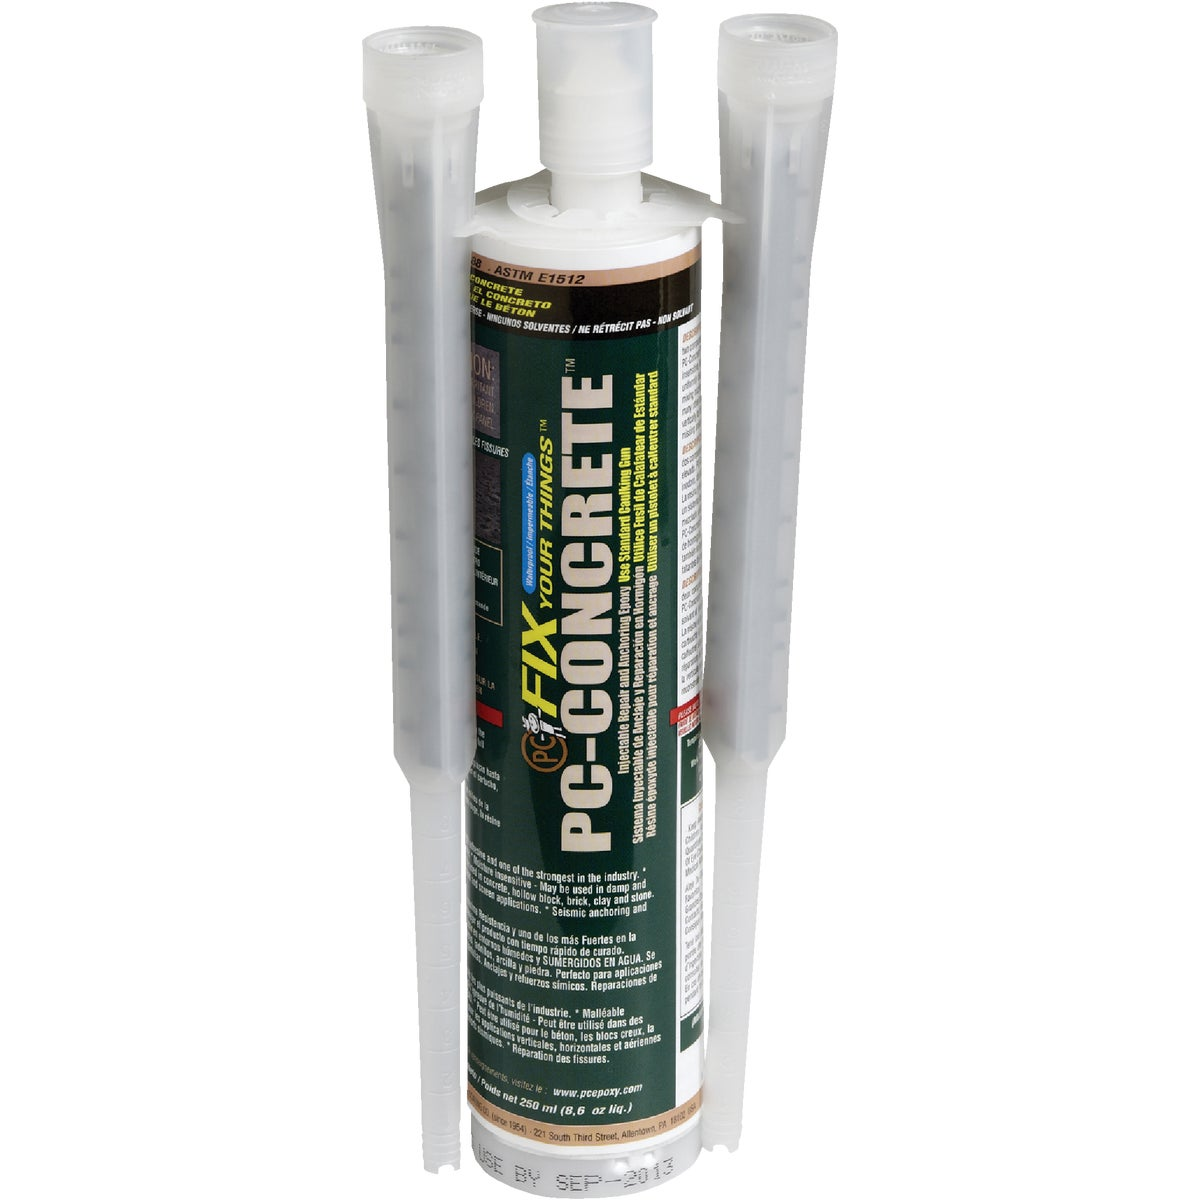 250ML CONCRETE RPR EPOXY - 07256 by Protective Coating